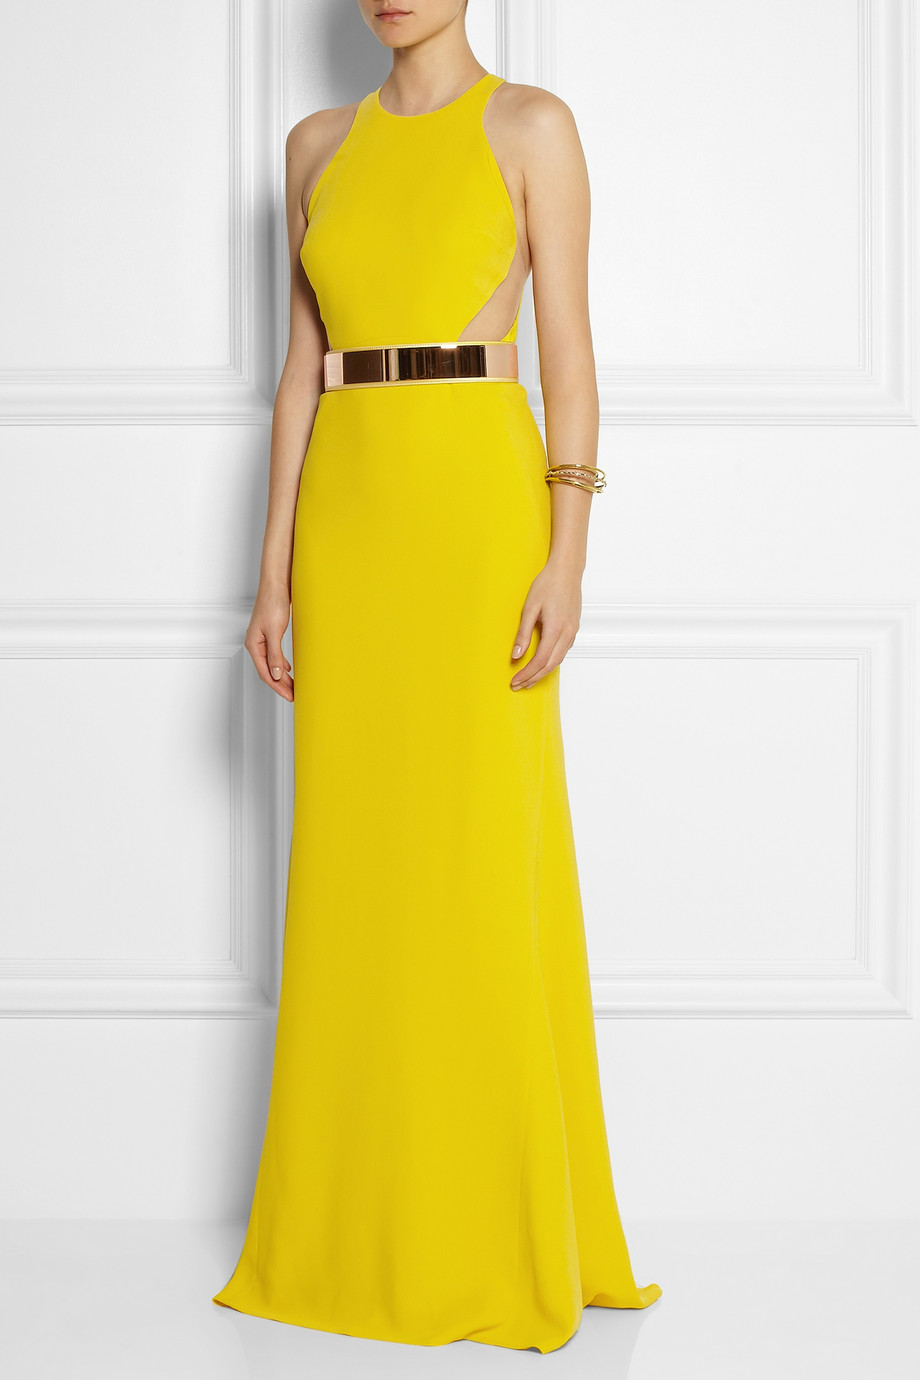 Stella McCartney Saskia Stretch-Cady Gown in Bright-Yellow